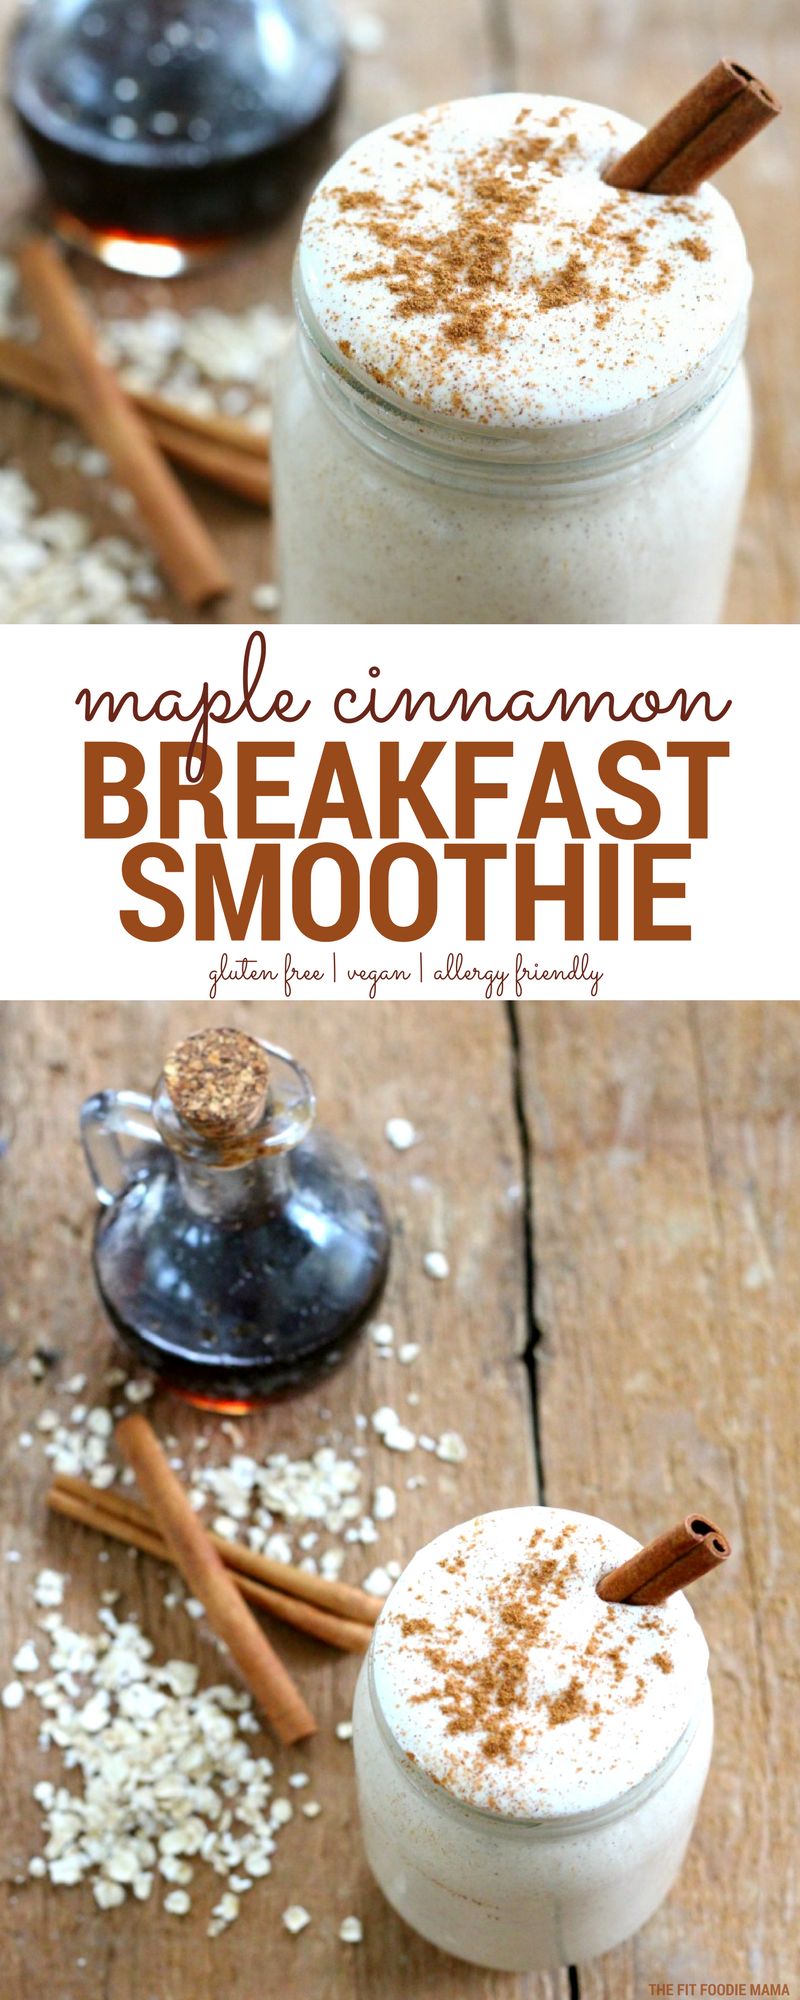 This high protein Maple Cinnamon Breakfast Smoothie is the perfect post-run recipe. It's packed with plant protein, gluten free oats and nut free flax milk. It's also quick and easy to whip up and take with you on the go so you can refuel as you recover.